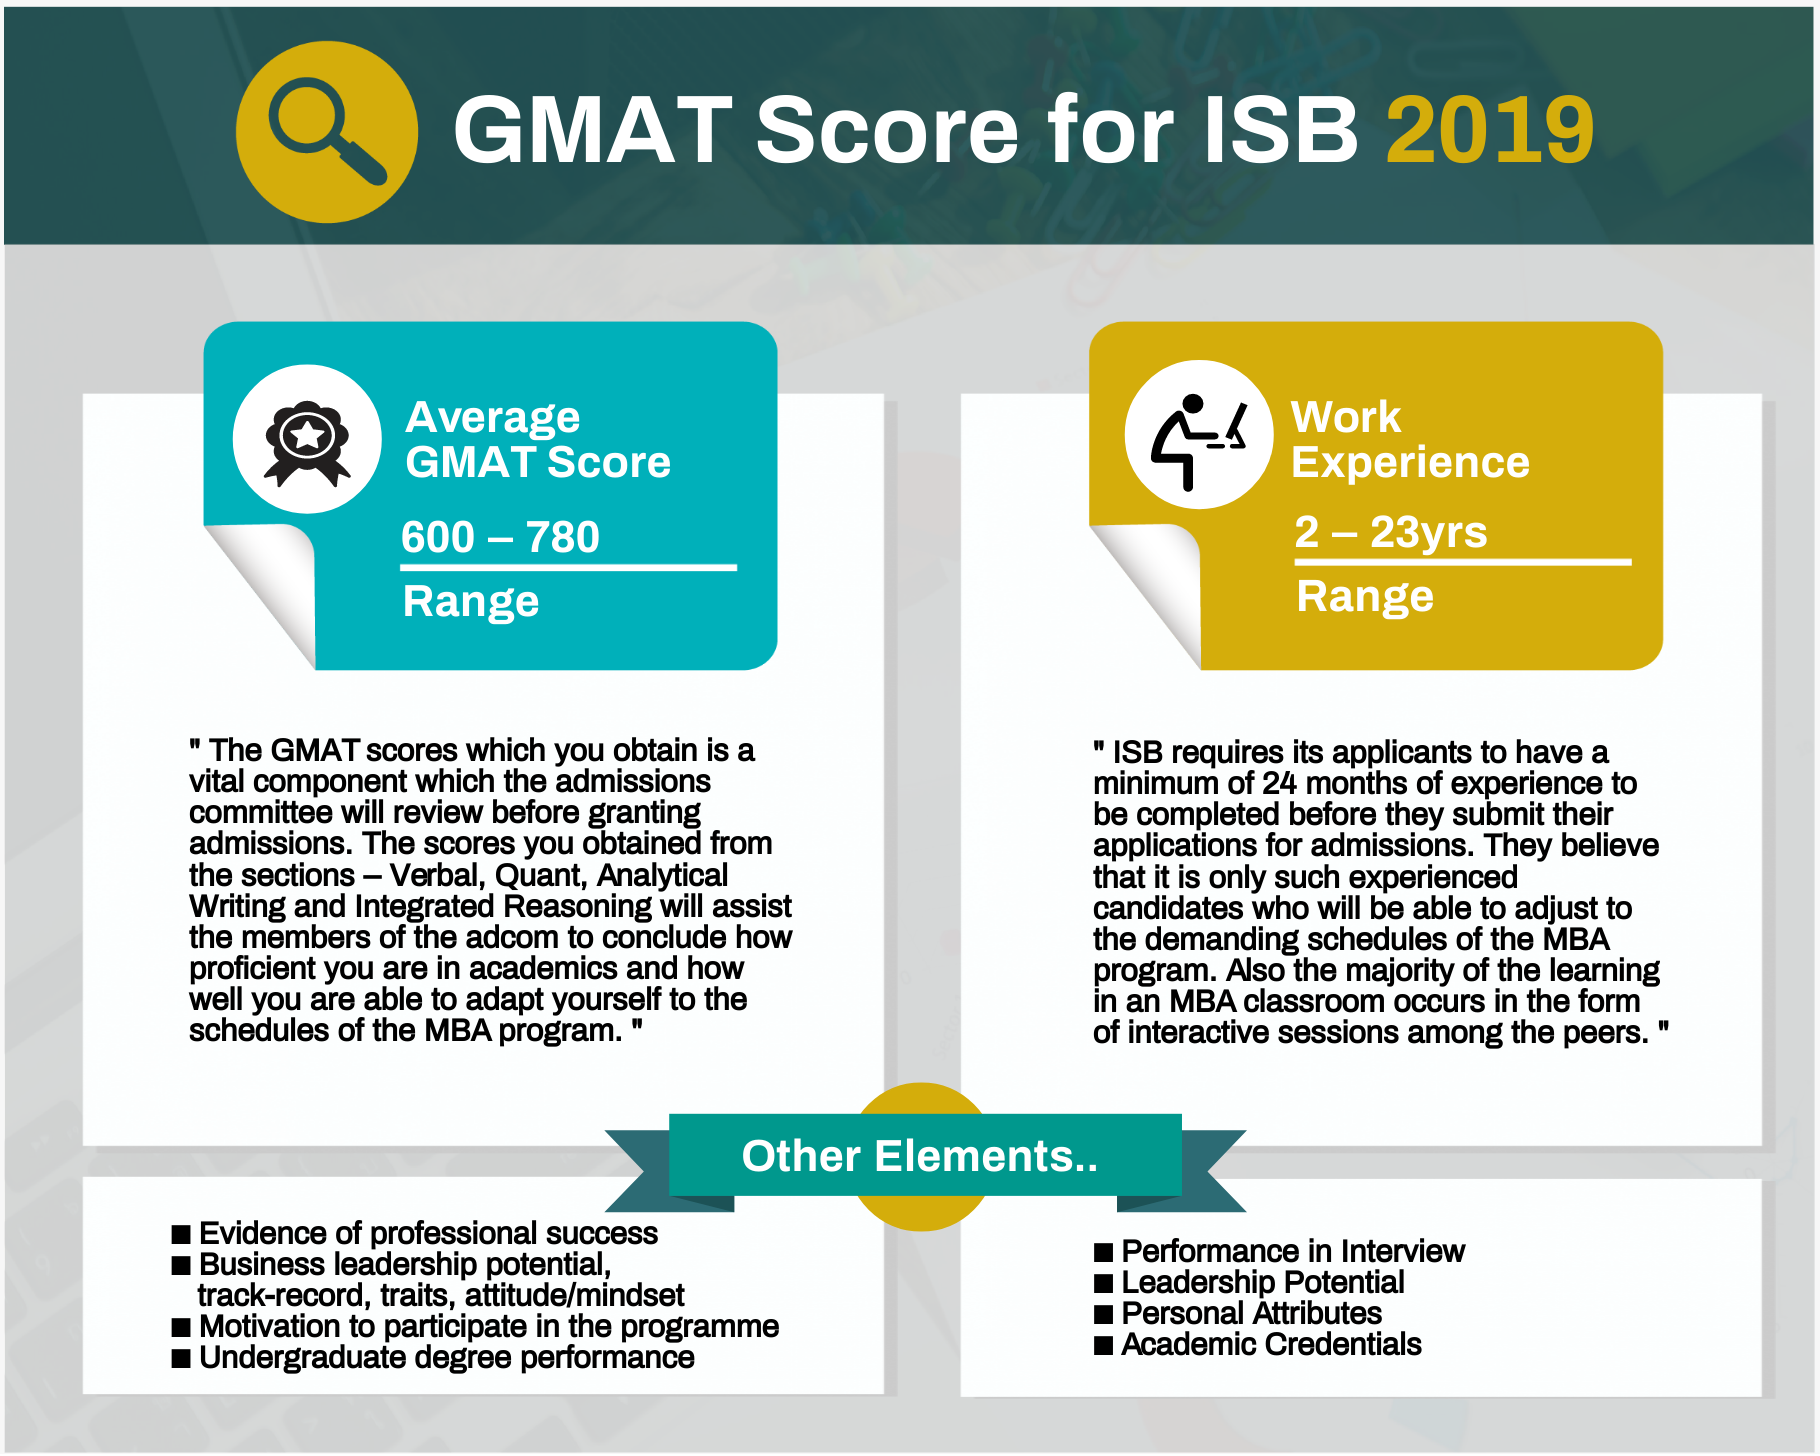 GMAT Score for ISB